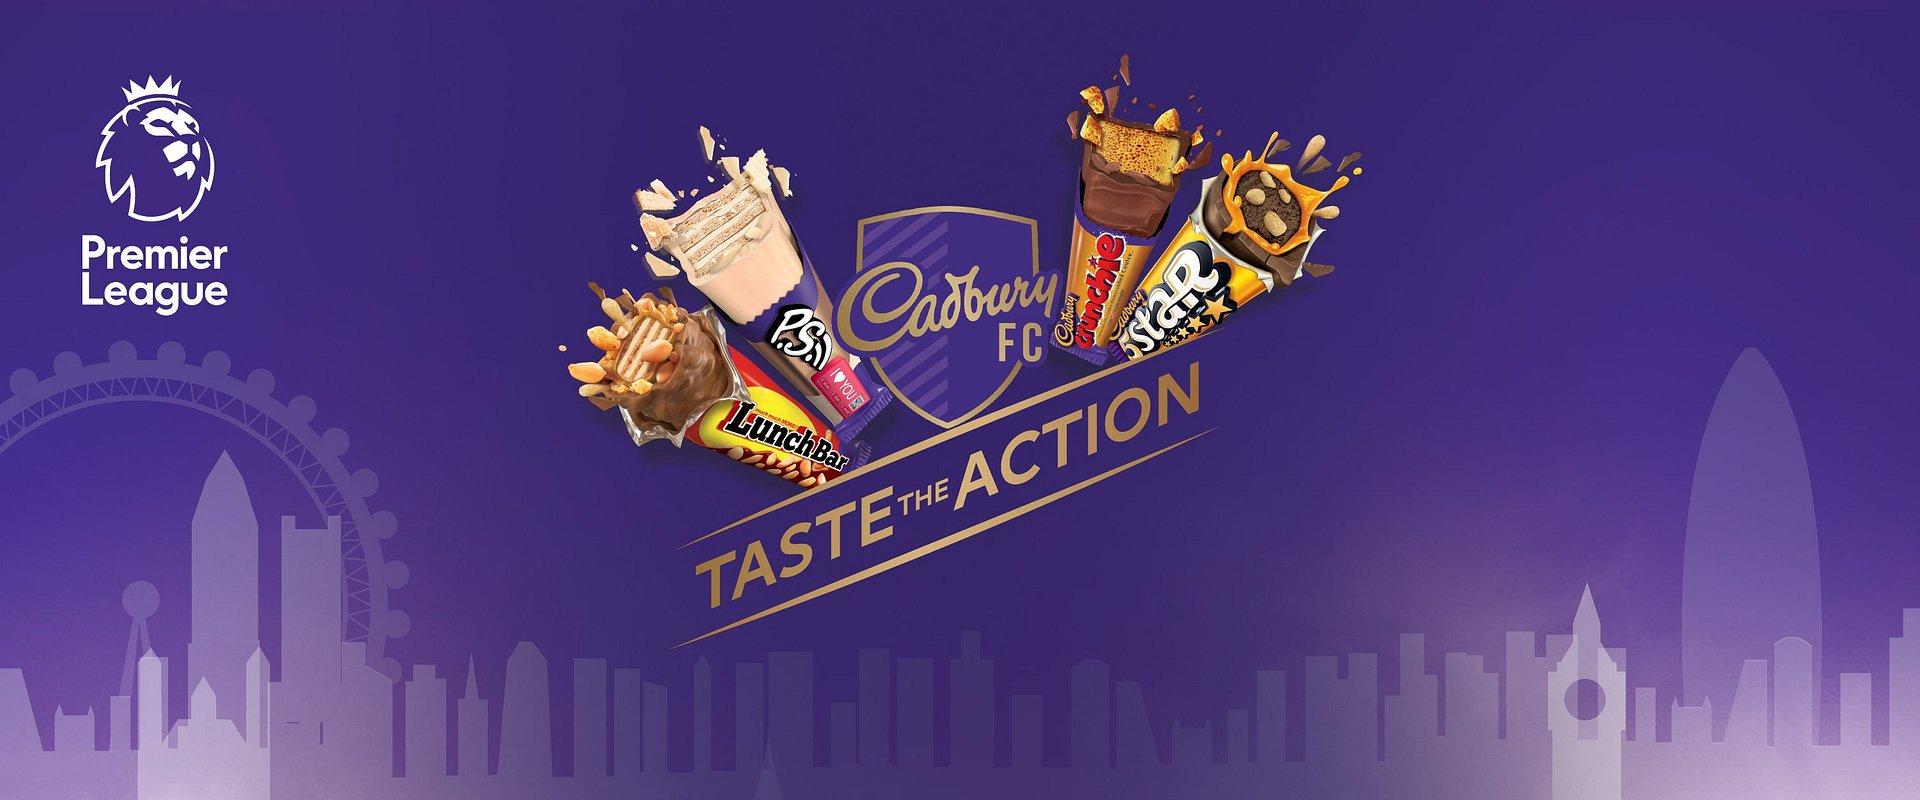 Score a once in a lifetime experience with 'Cadbury FC, Taste the Action' to watch a Premier League game live in the UK!                           #CadburyTasteTheAction